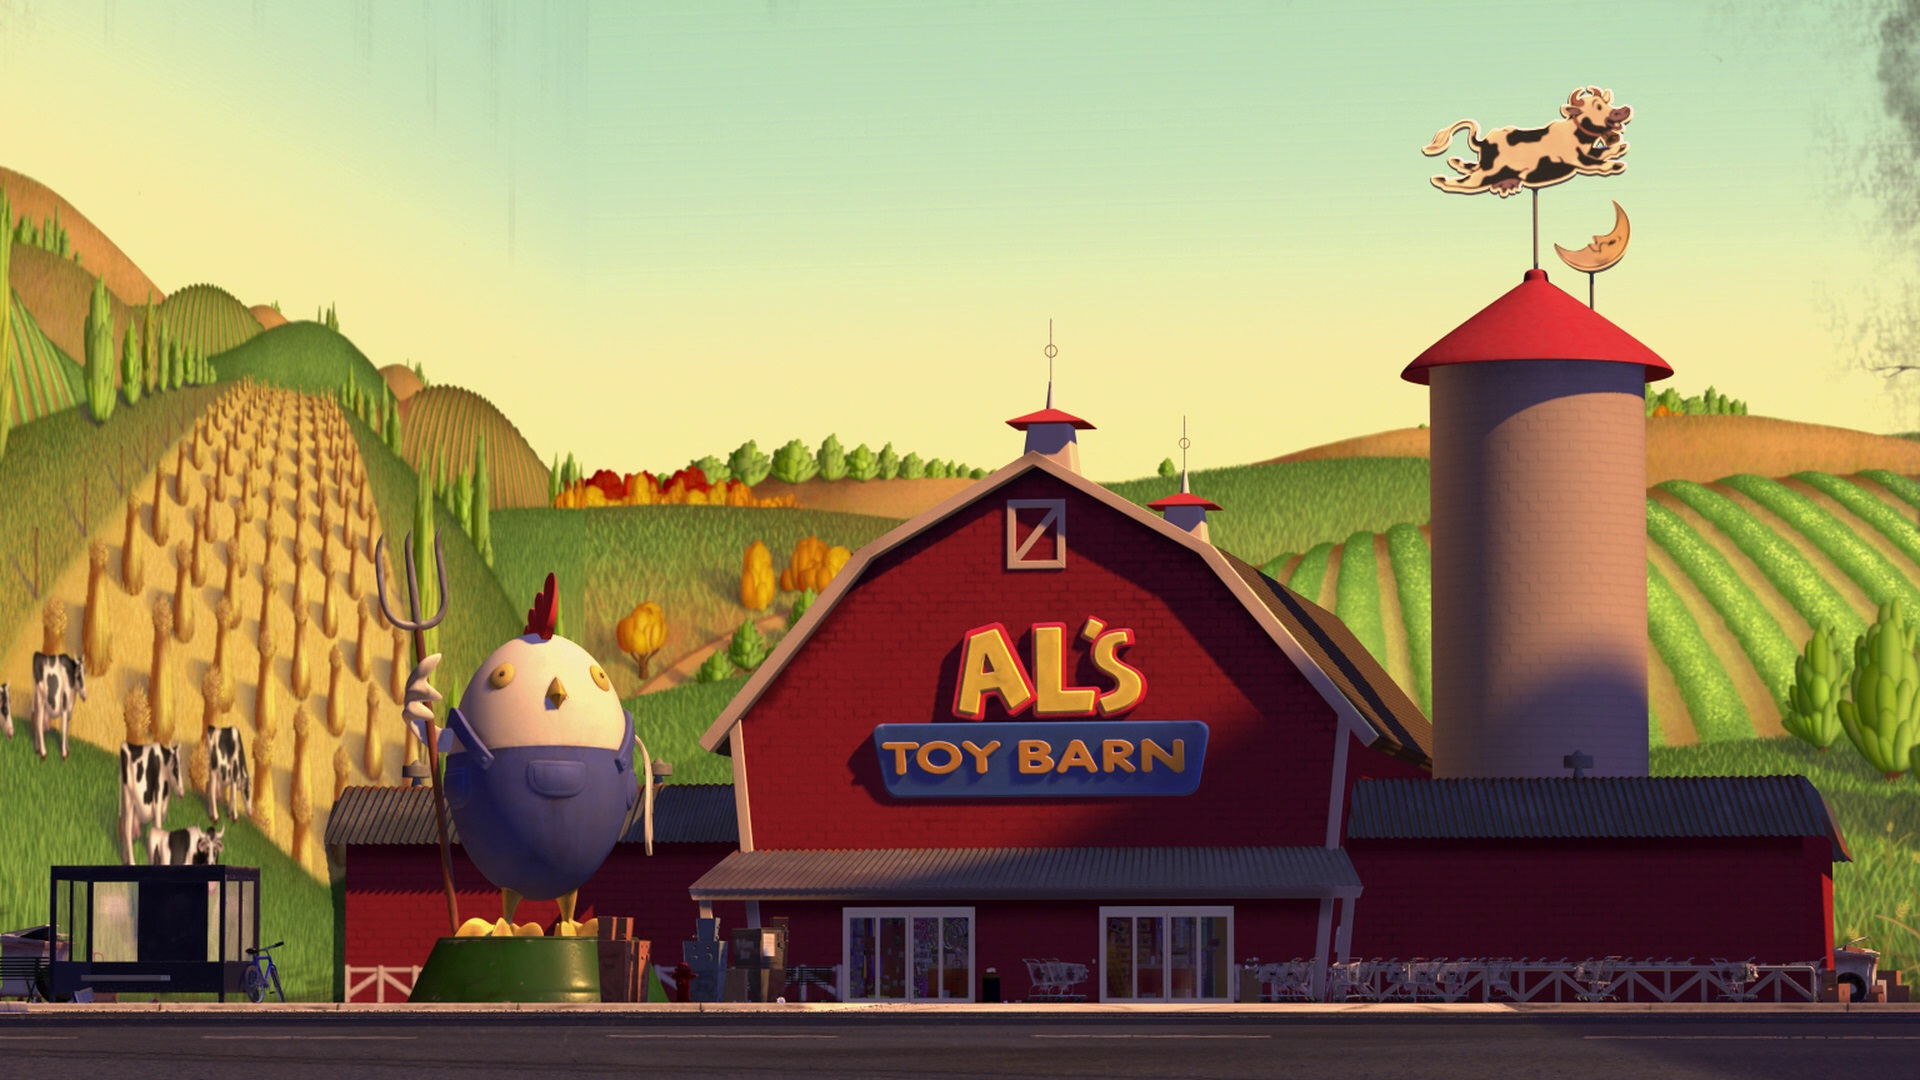 File:Al's Toy Barn.jpg